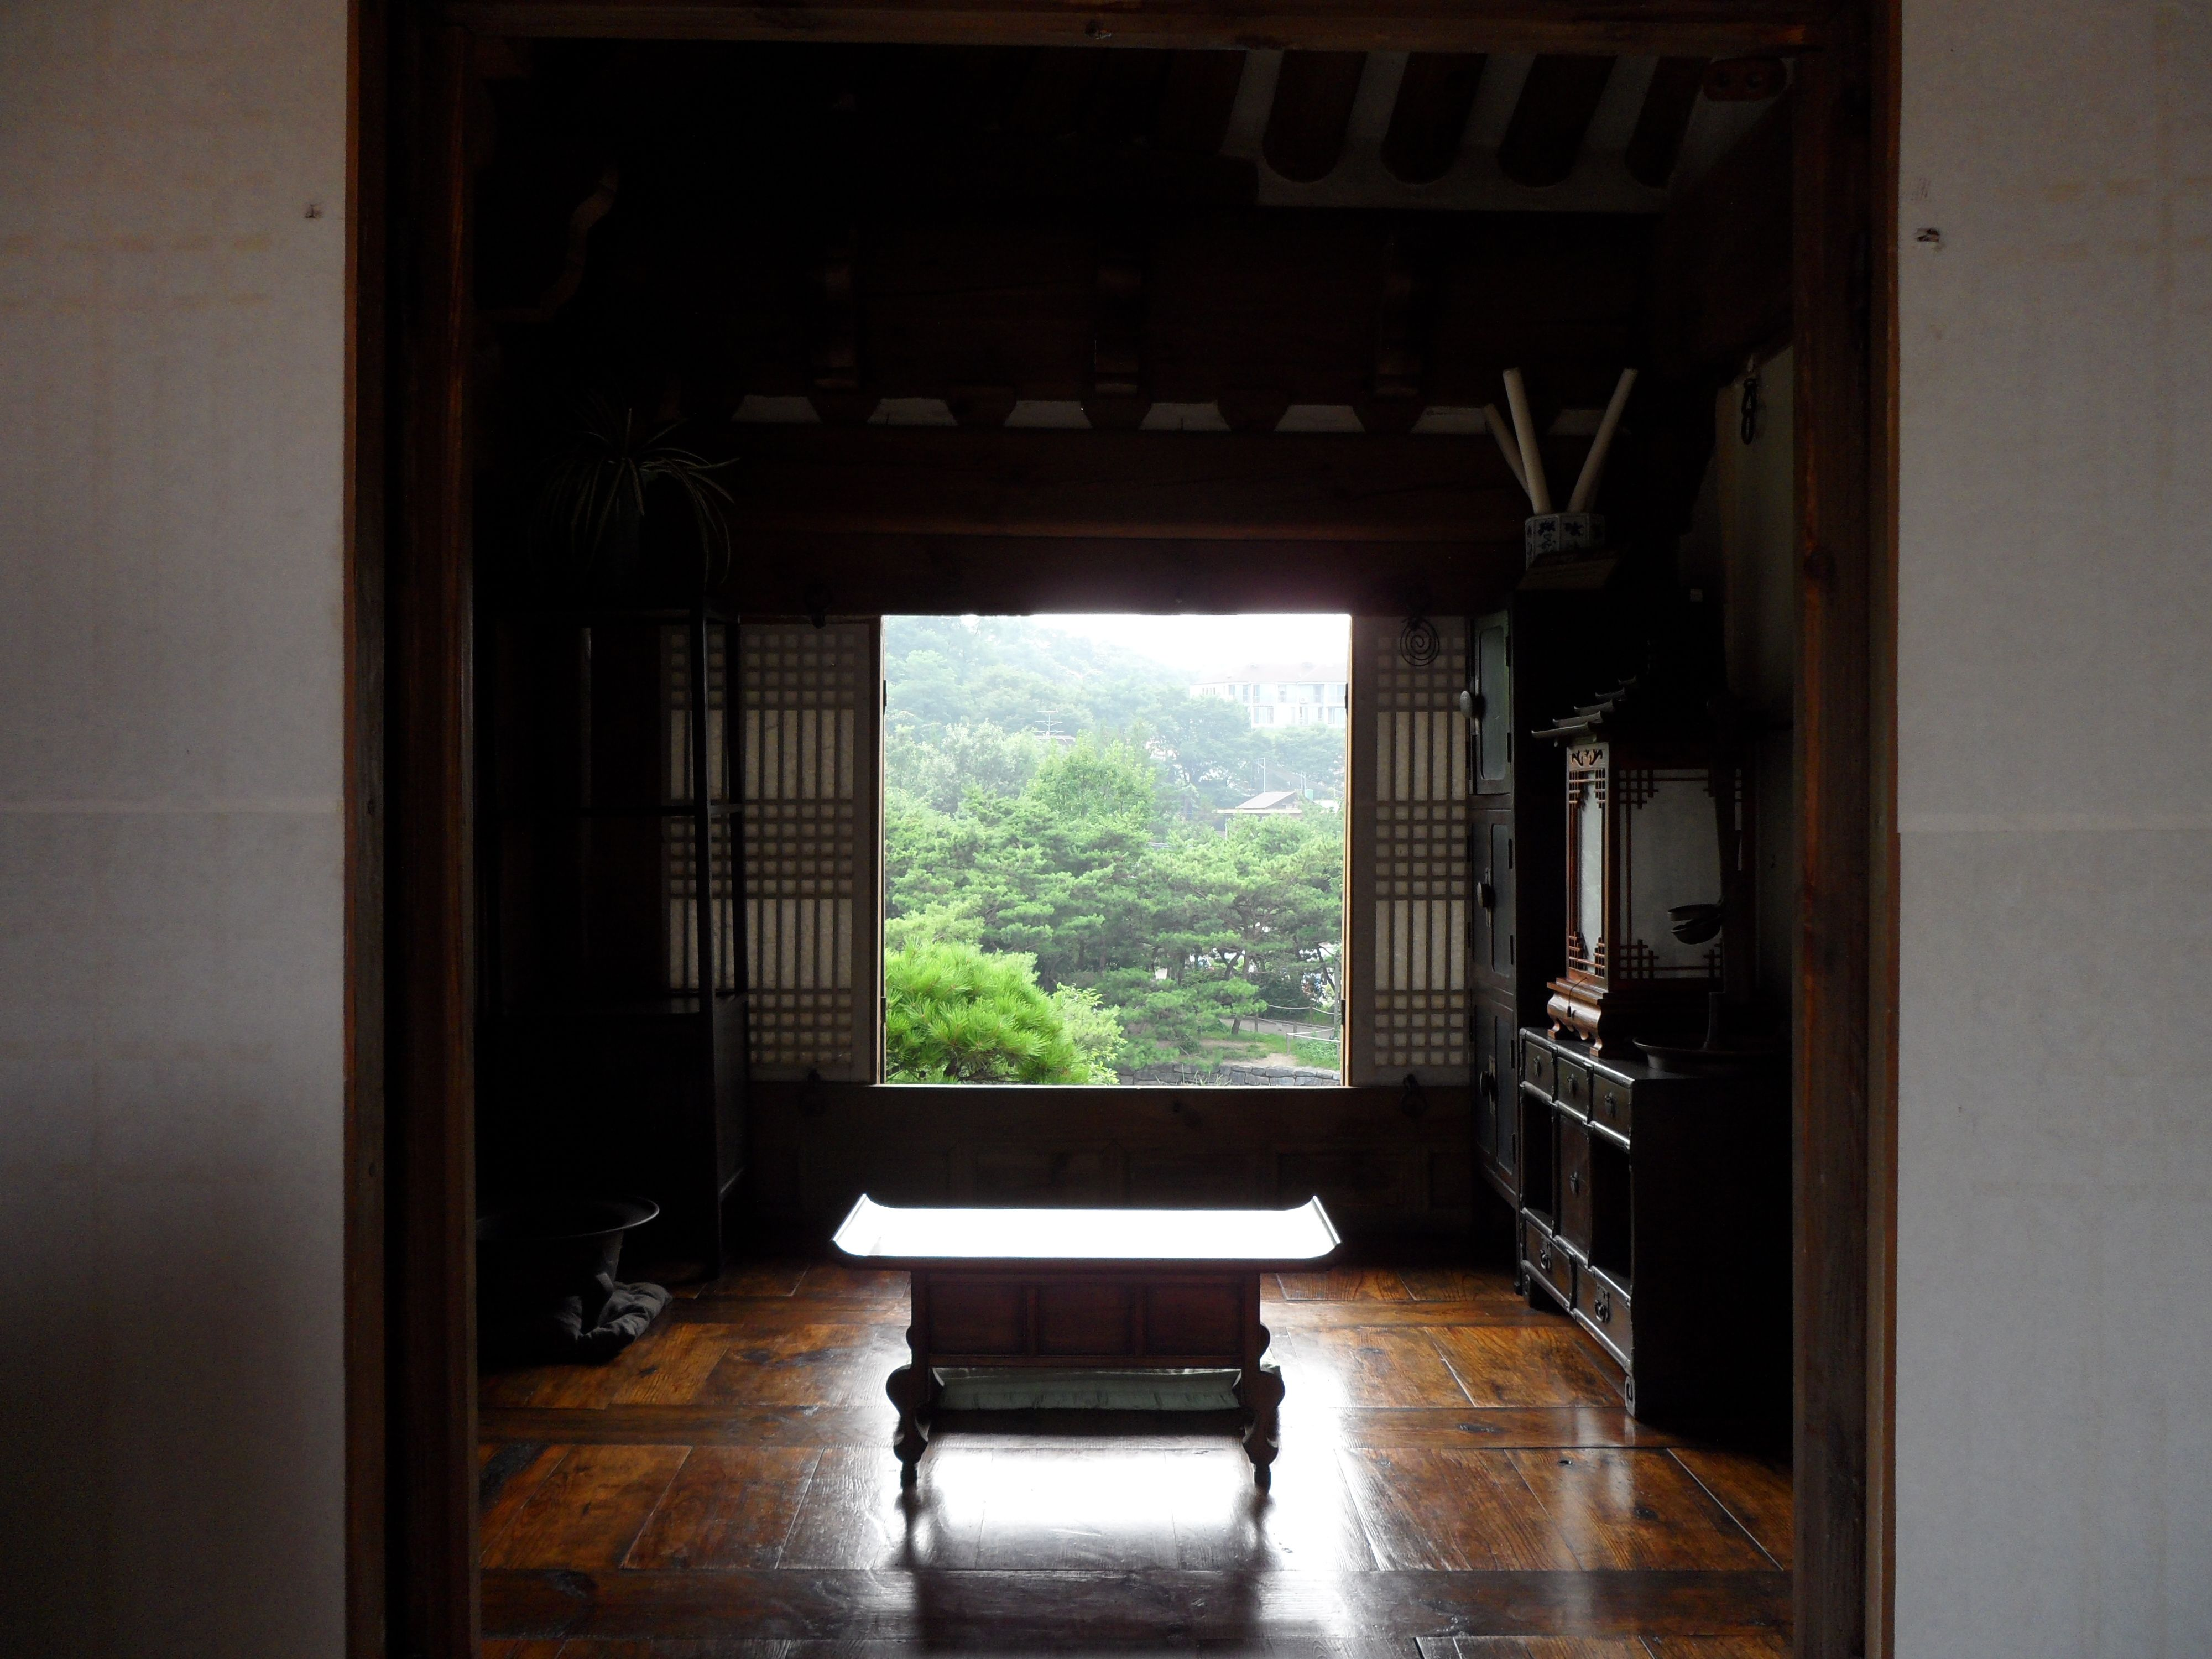 Traditional chinese house interior namsangol hanok village is a mini folk village consisting of a